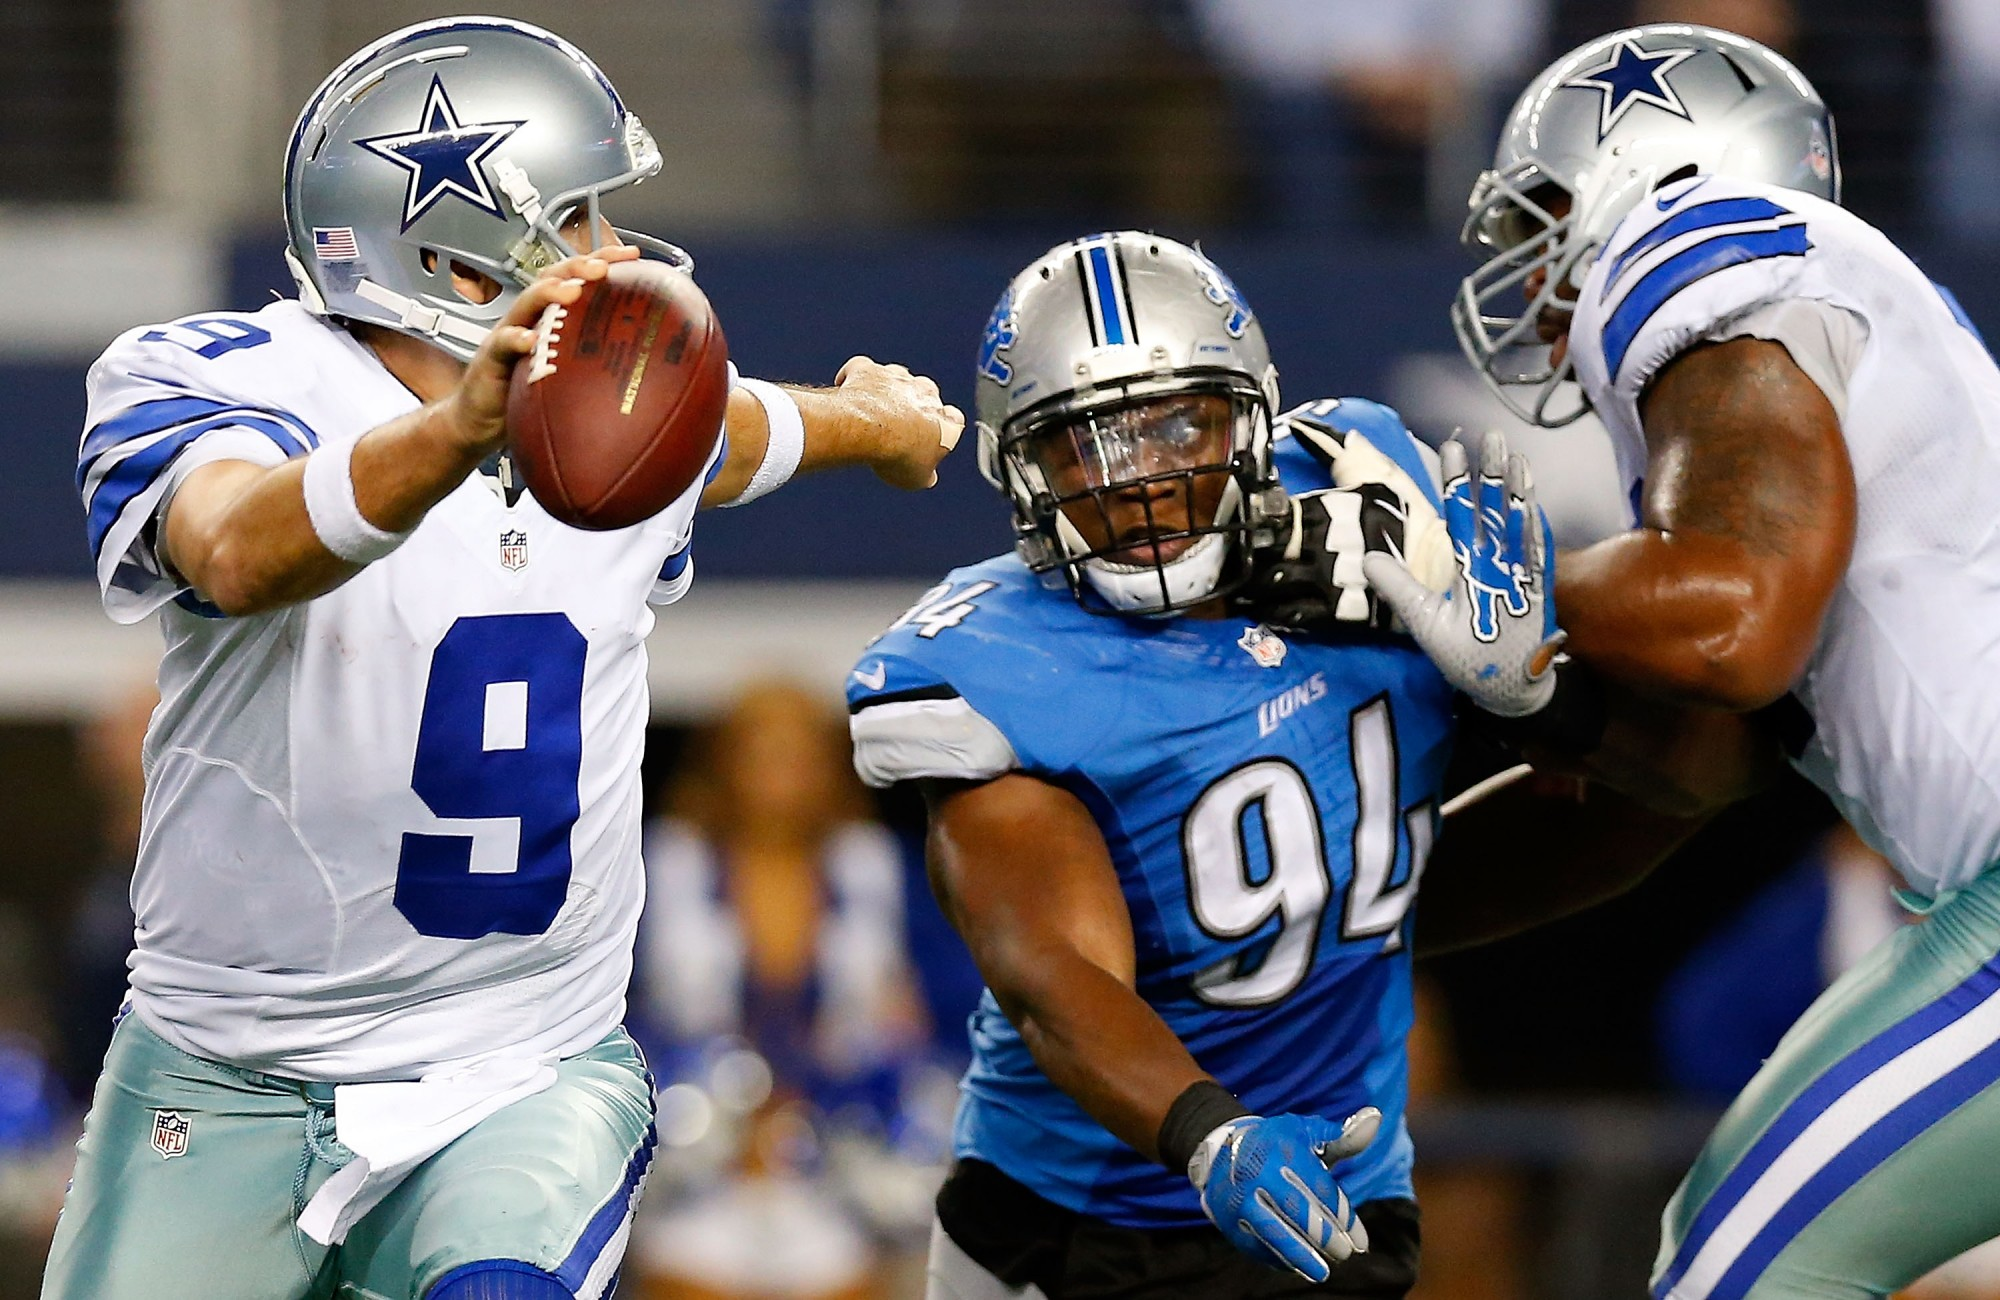 Is Ziggy Ansah the best African player in the NFL of all time